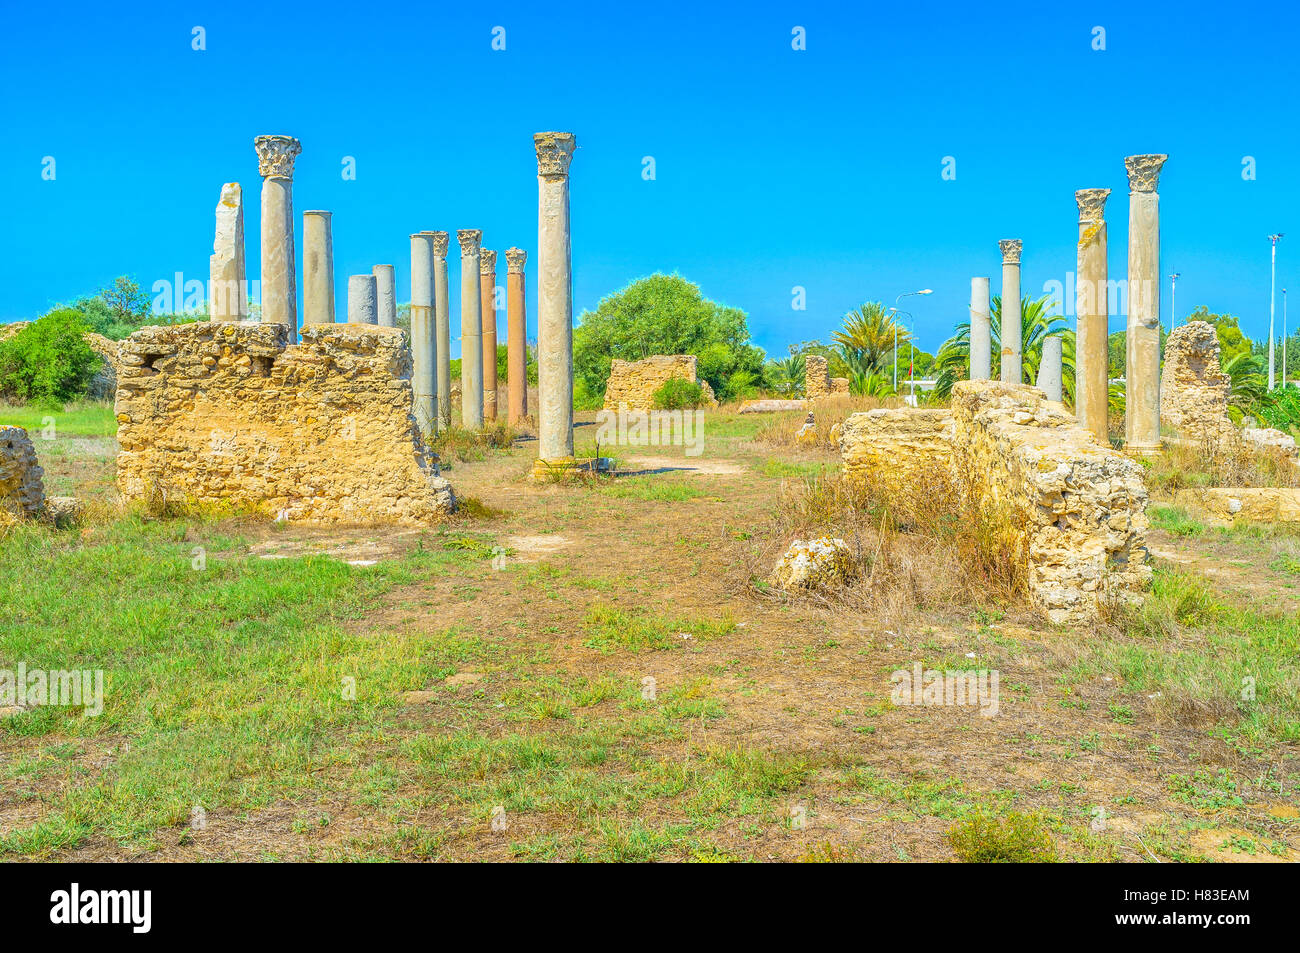 The rows of columns are the preserved part of the Punic temple in Carthage, Tunisia. - Stock Image